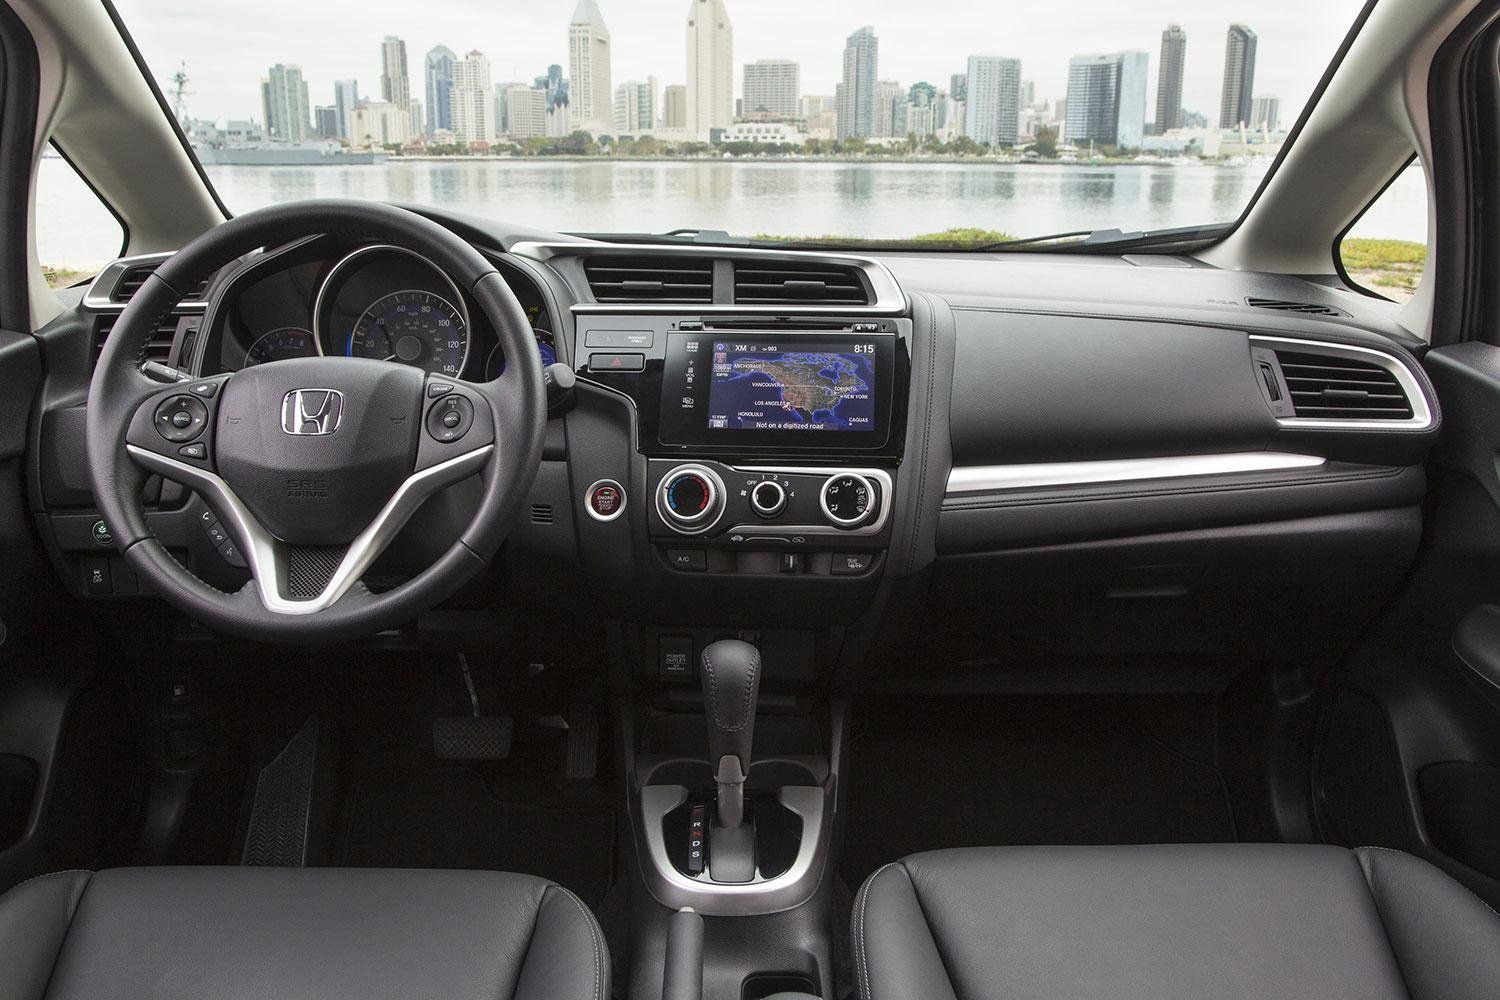 2015 Honda Fit Cockpit And Dashboard Interior (Photo 11 of 16)